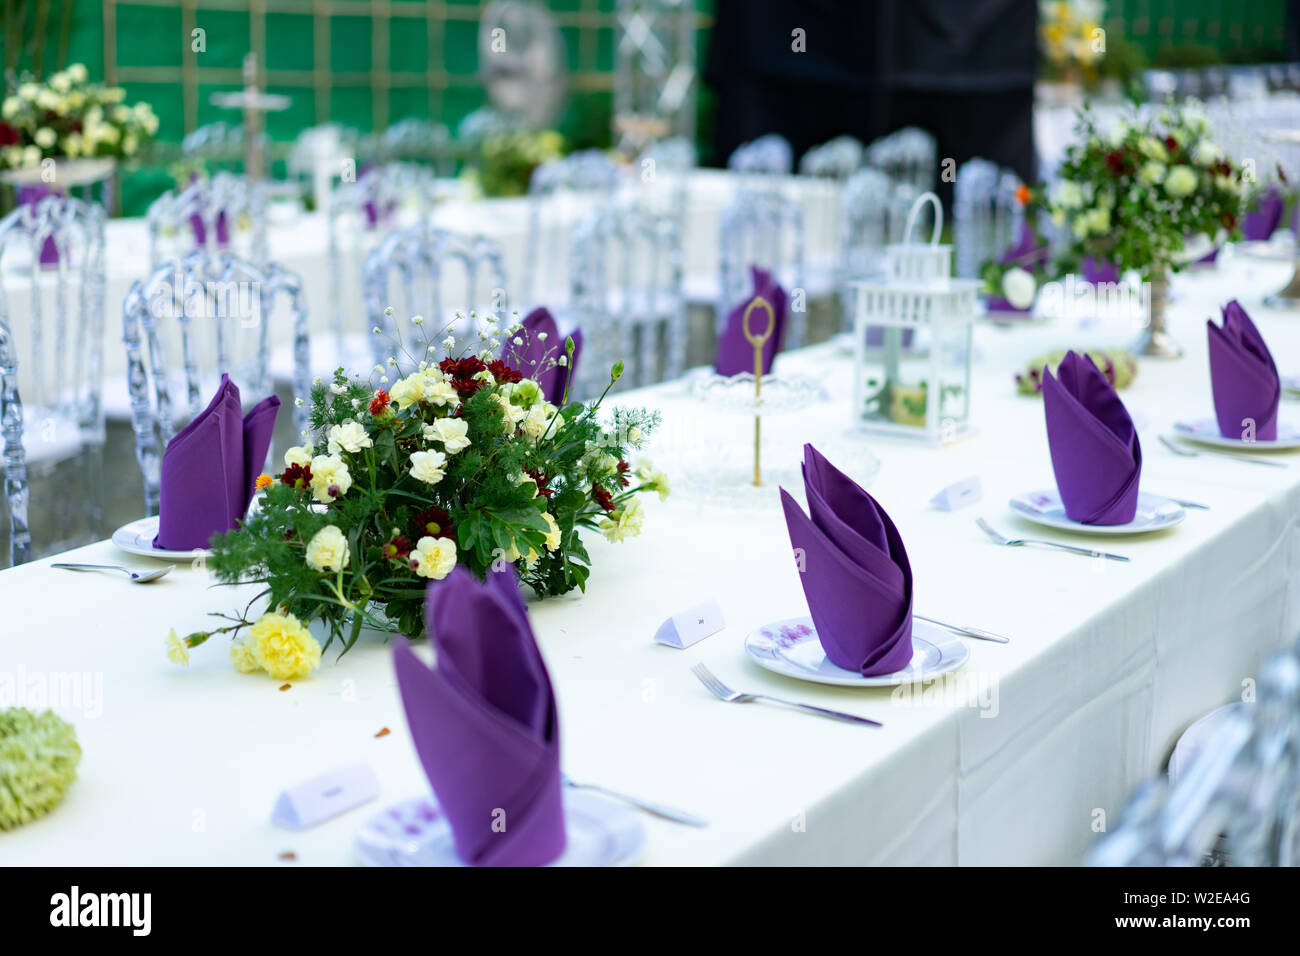 Luxury White Purple Red Dinner Table Set With Crystal Chair In The Garden Stock Photo Alamy